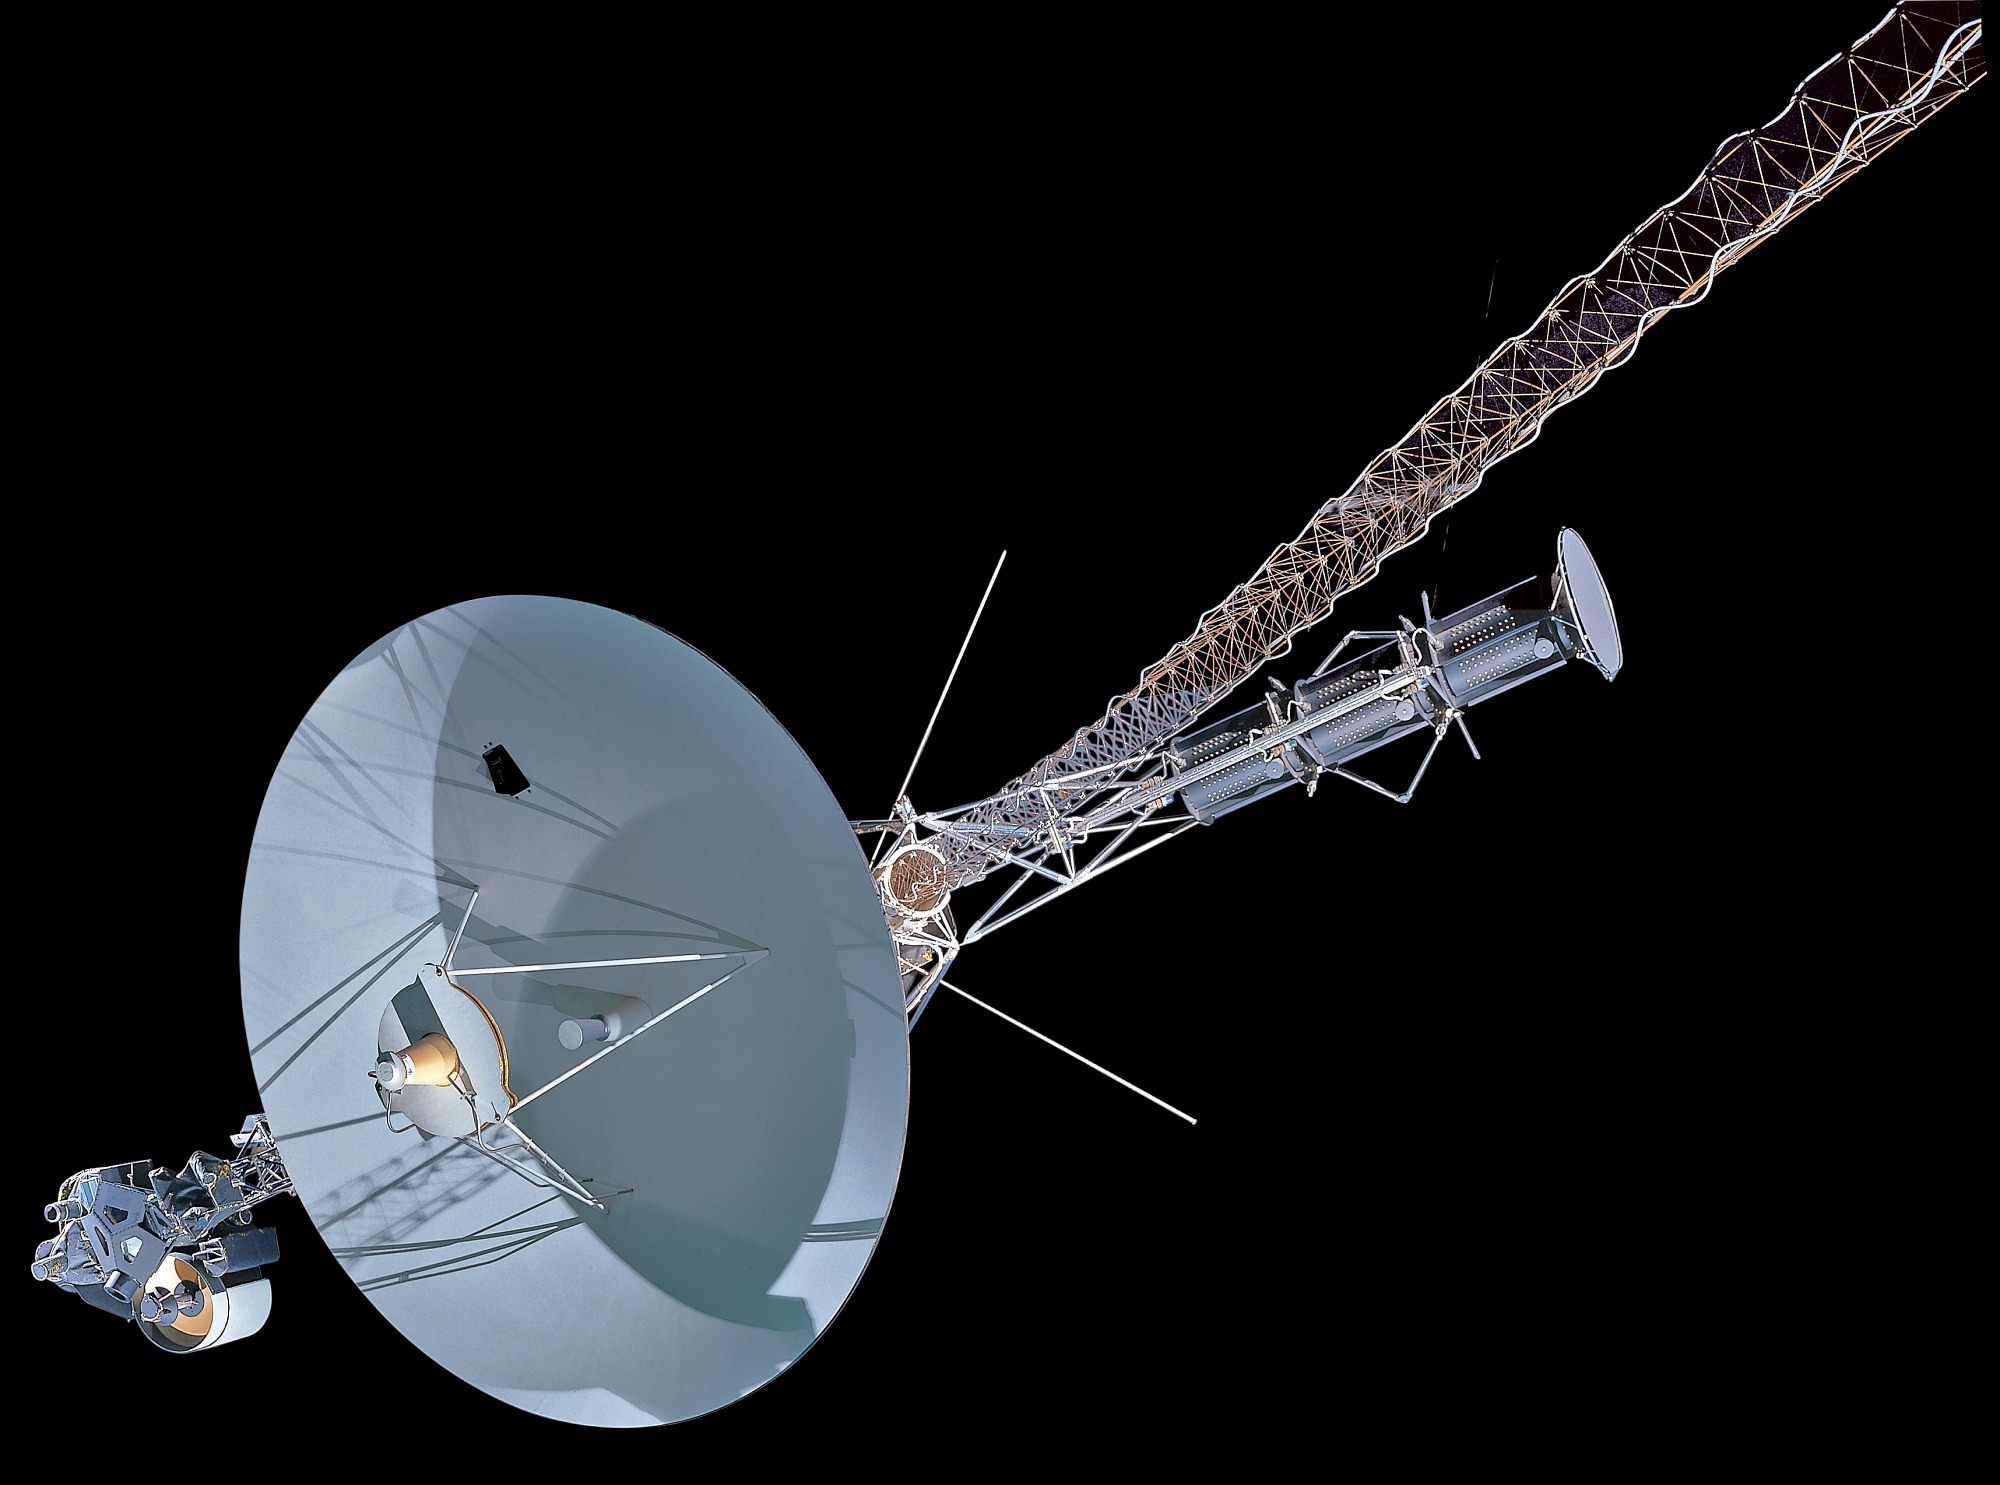 Image of : Voyager Spacecraft Mock-up, Full Scale